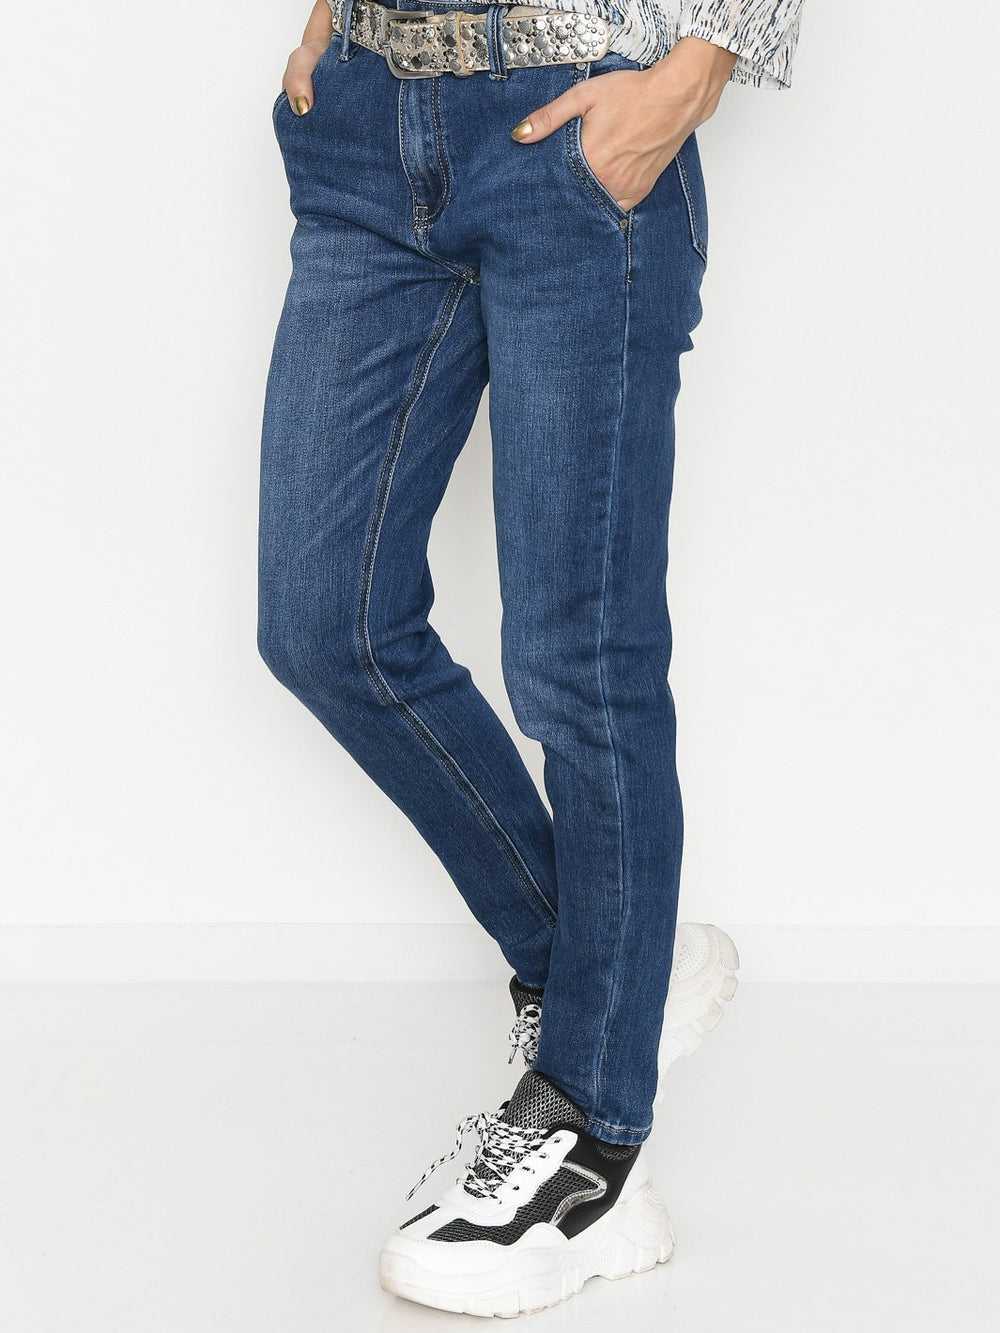 Prepair Hailey pants blue - Online-Mode